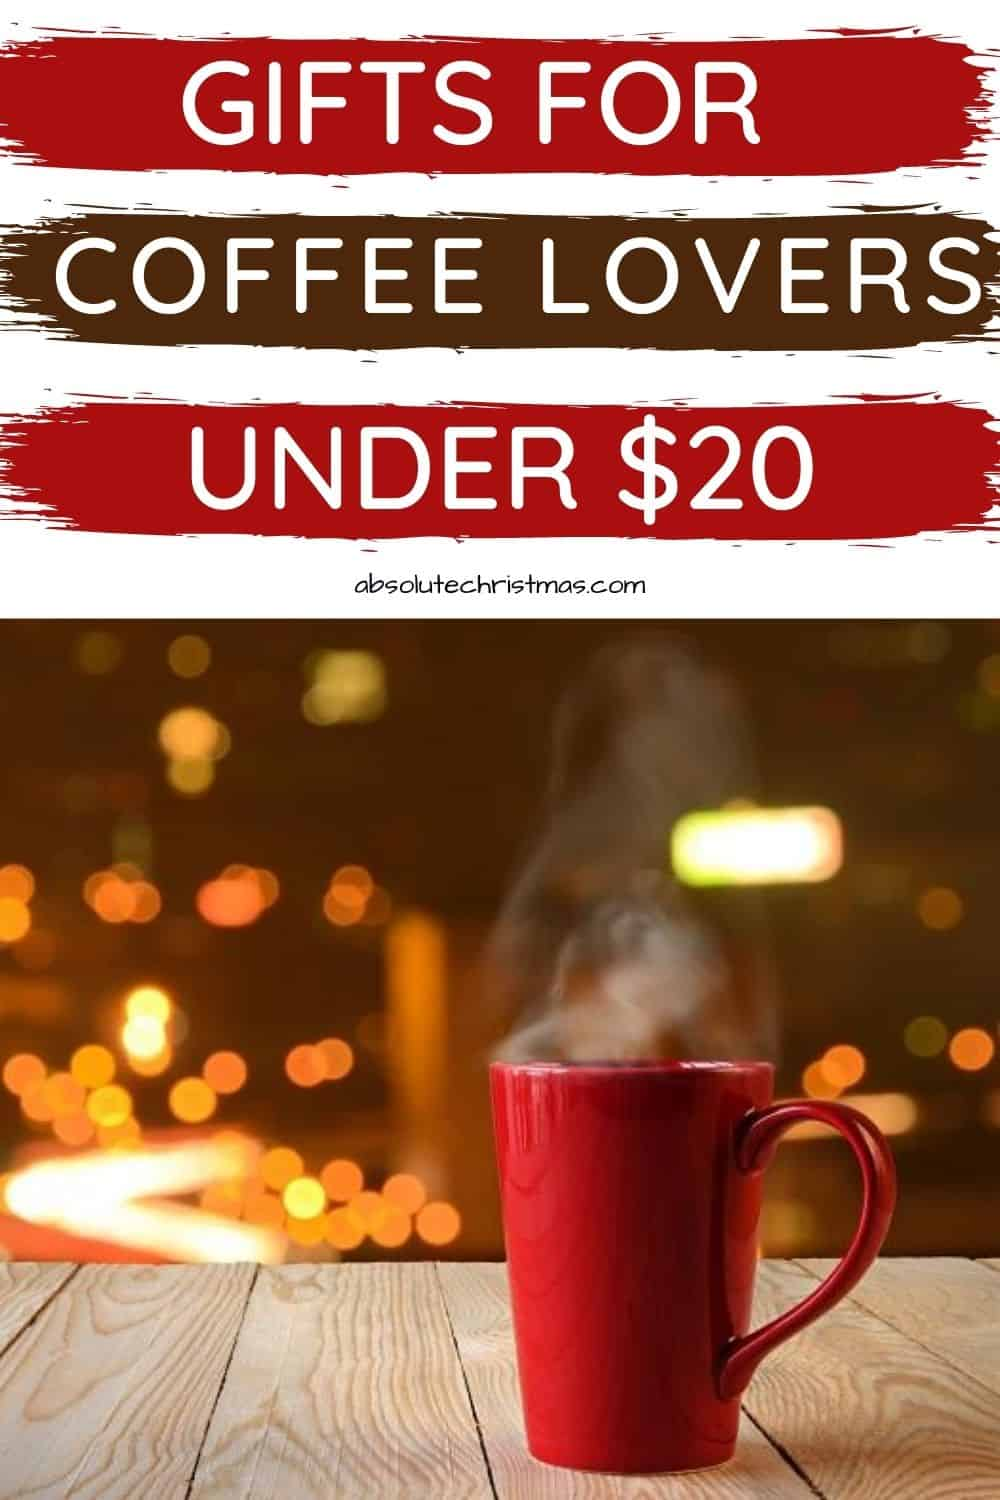 Gifts for Coffee Lovers Under $20 - Budget-Friendly Coffee Gift Ideas